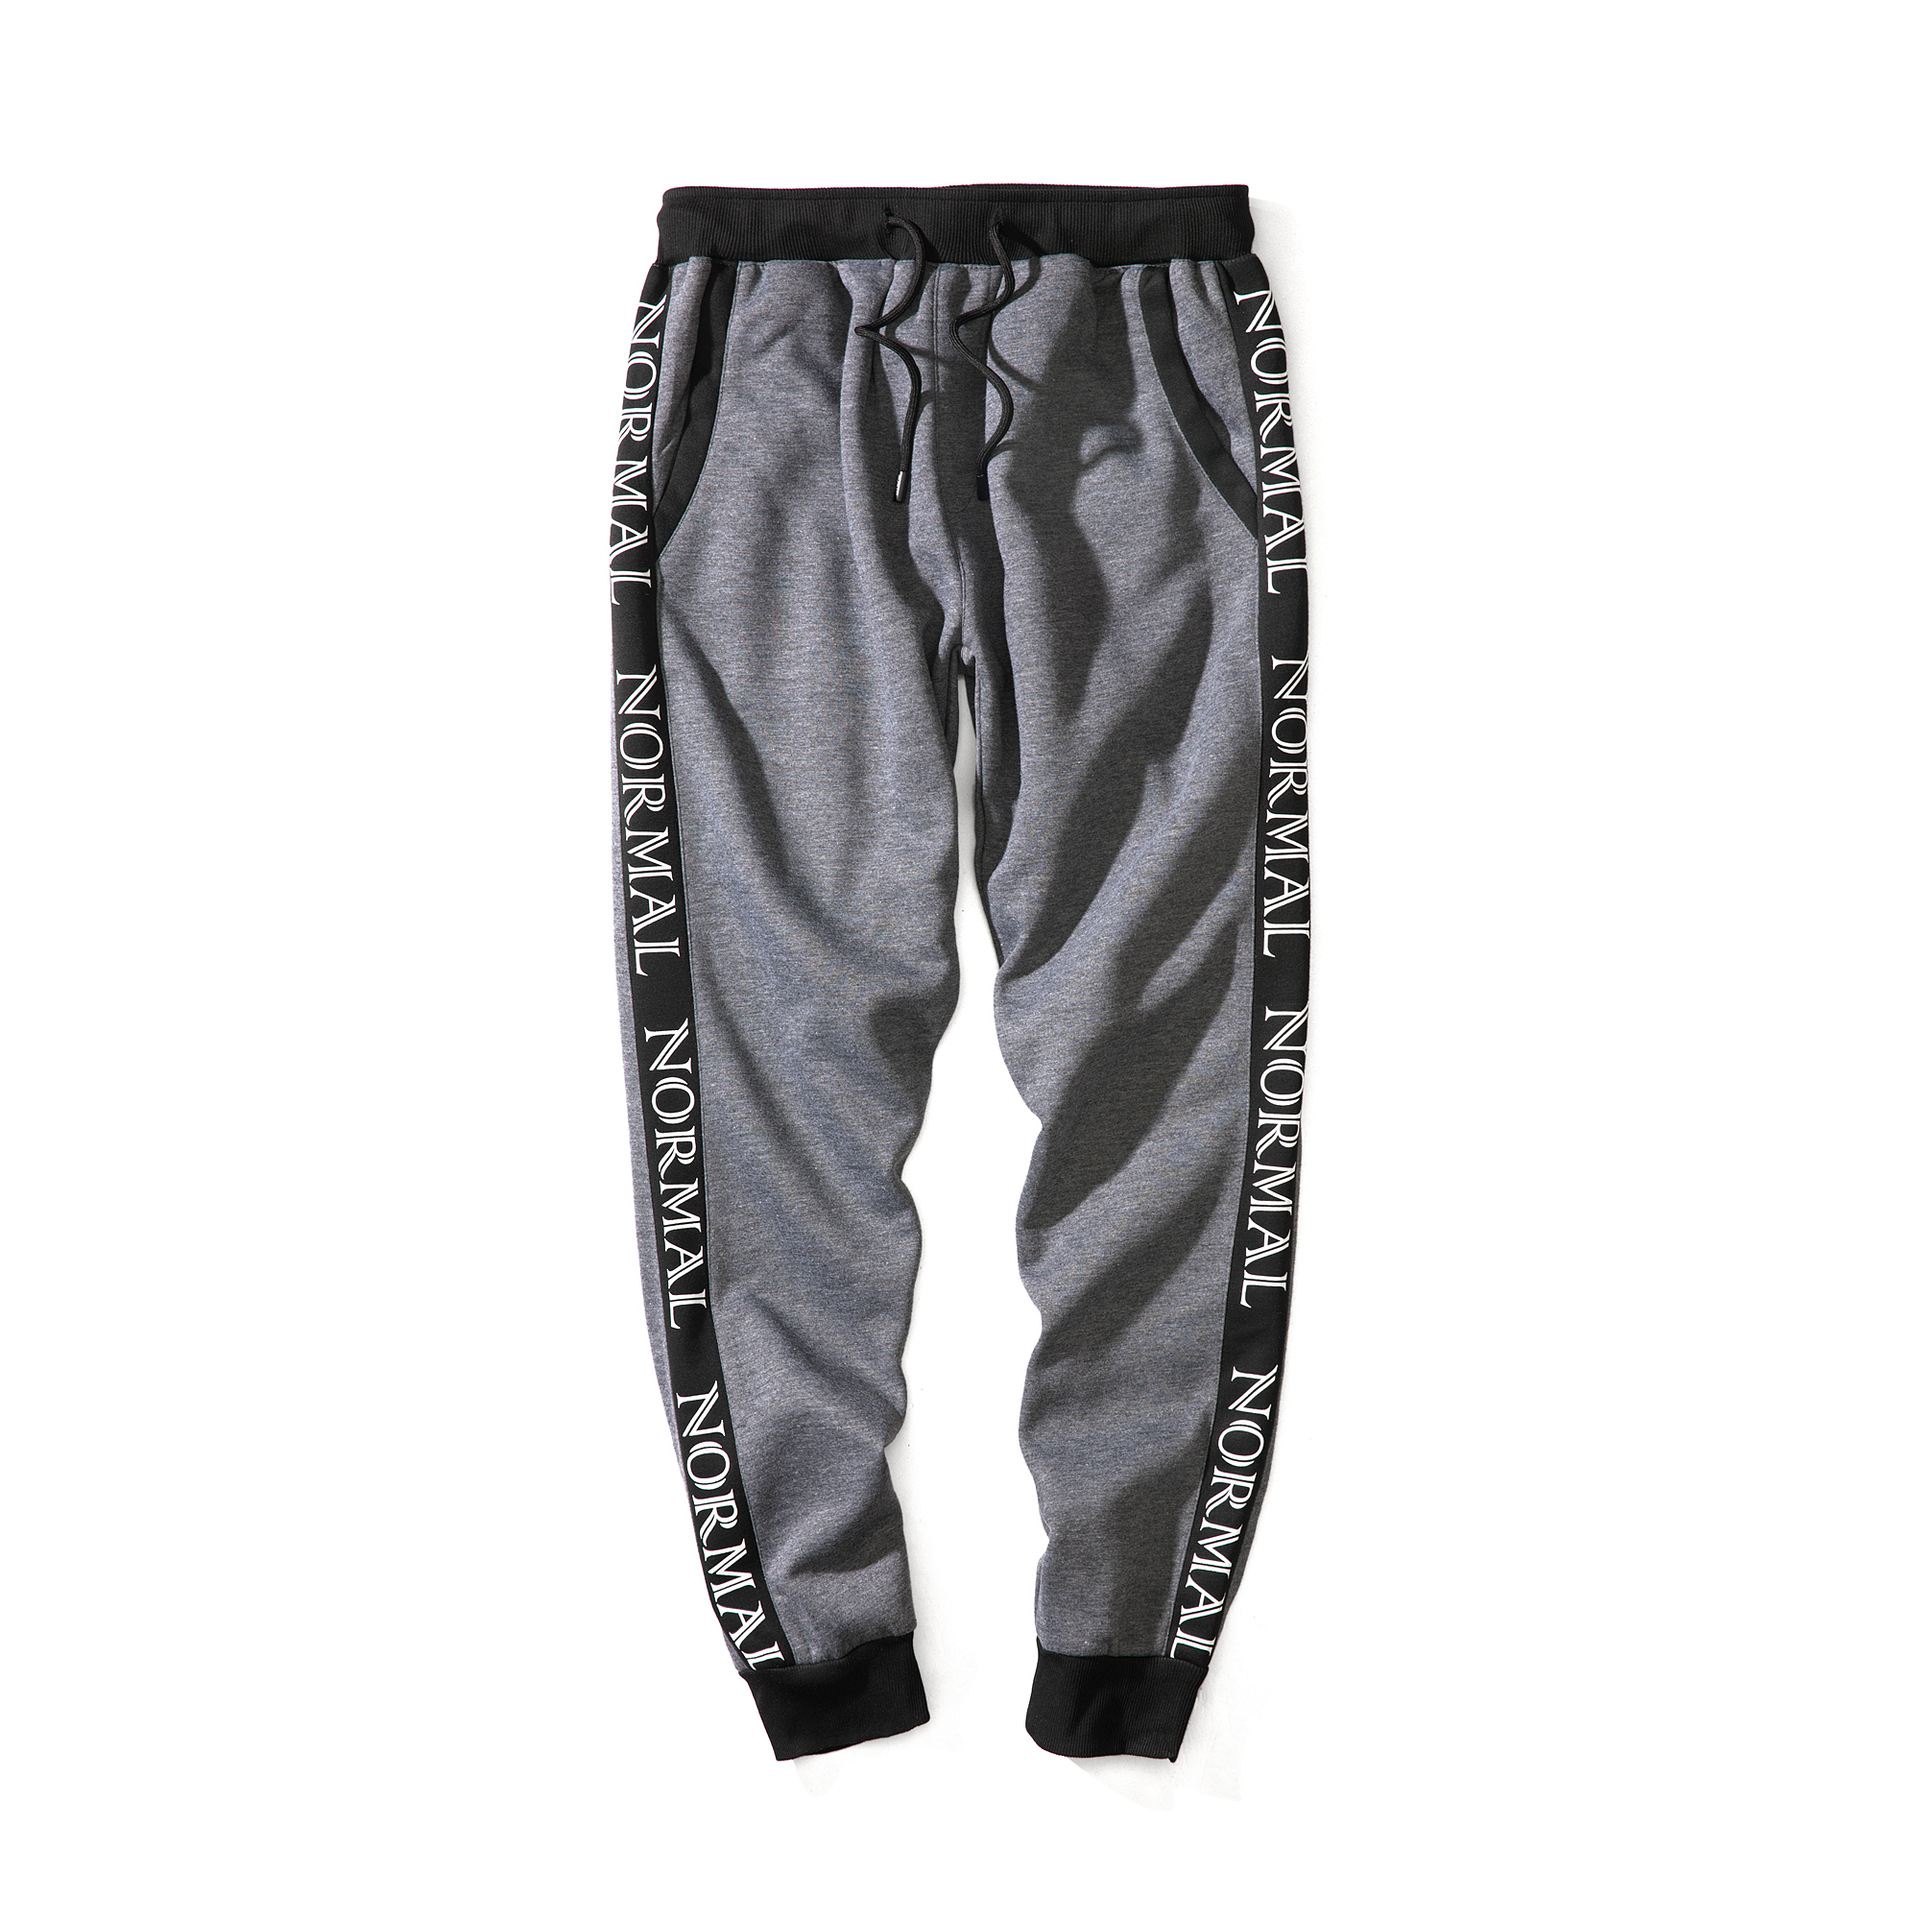 Tracksuit Bottoms Joggers-Pants Trousers Plus-Size Mens Fashion New-Brand Casual Gyms